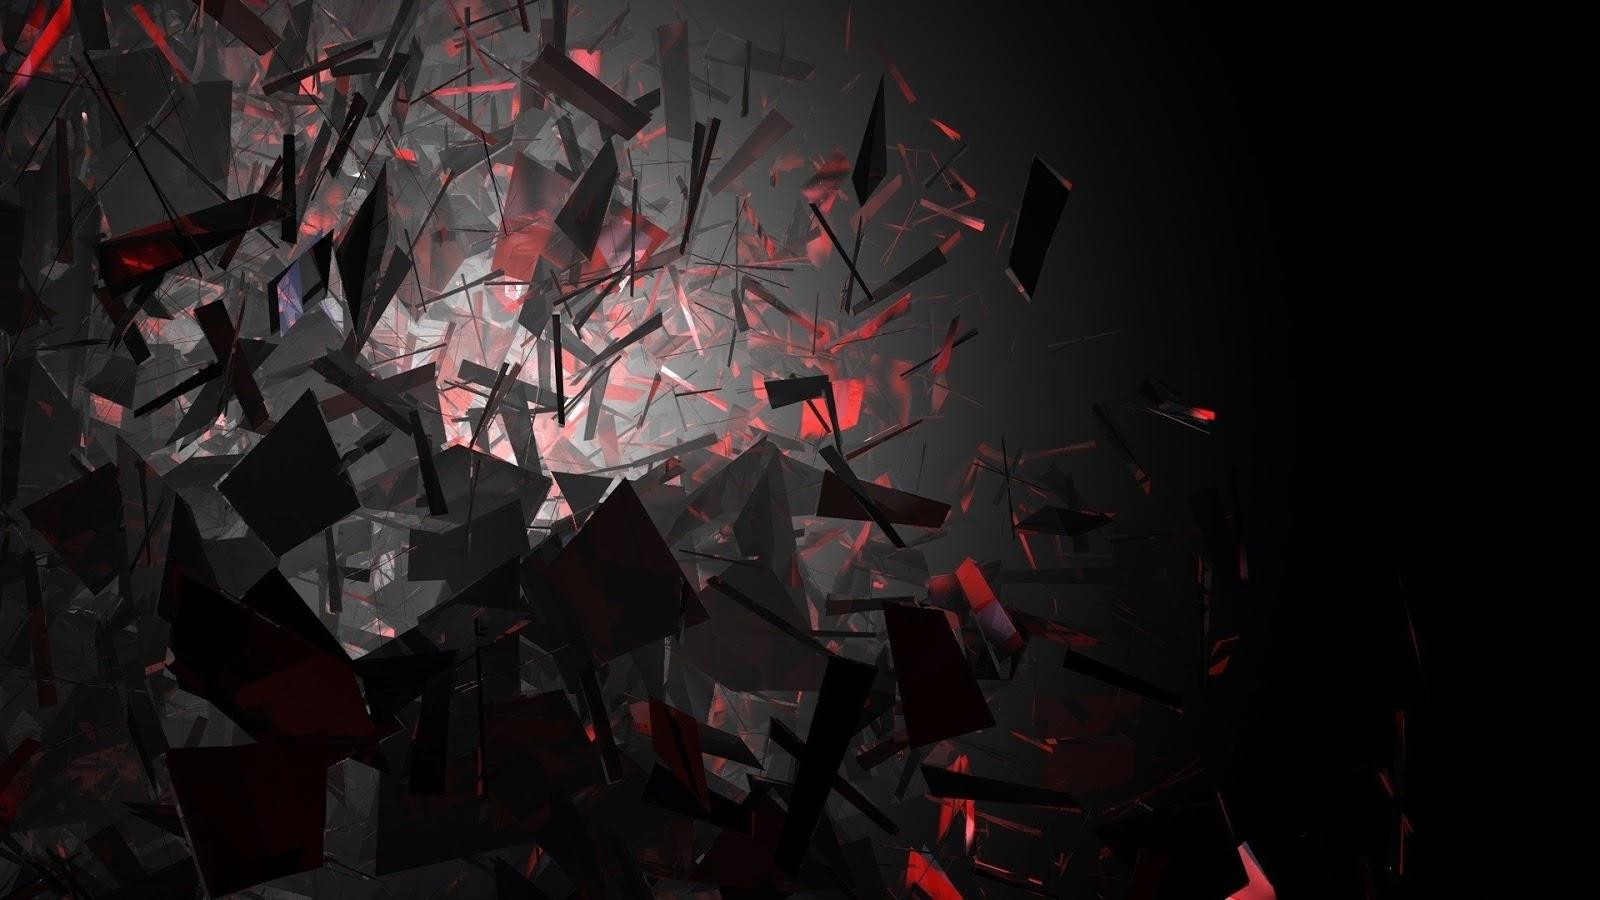 hd wallpapers 1080p abstract - photo #20